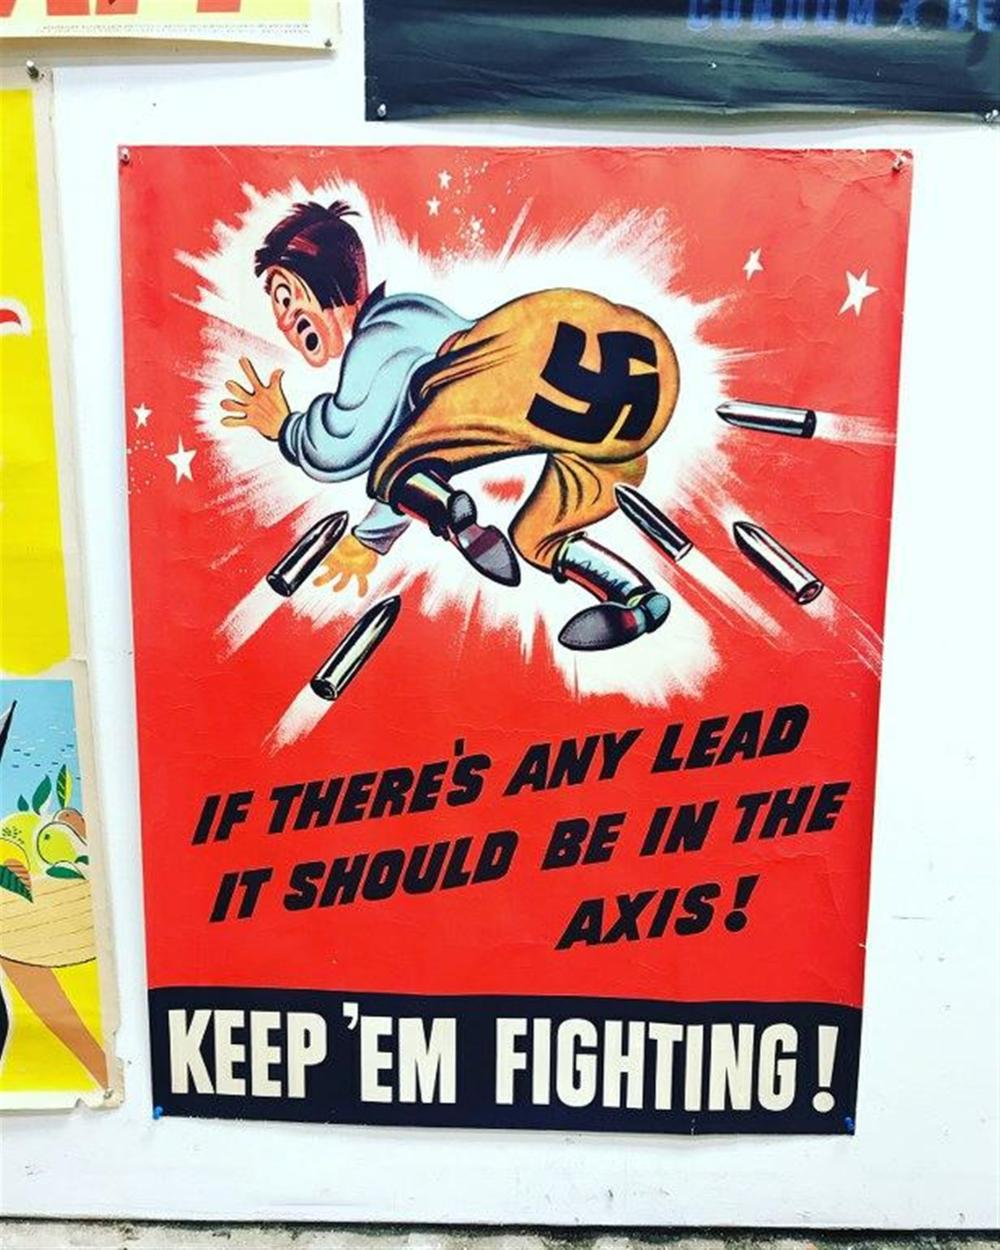 "POSTER- GERMAN PROPAGANDA POSTER IF THERE'S ANY LEAD IT SHOULD BE IN THE AXIS  KEEP EM FIGHTING. SOME SMALL BORDER RIPS, POSTER MEASURES 40"" X 30""."